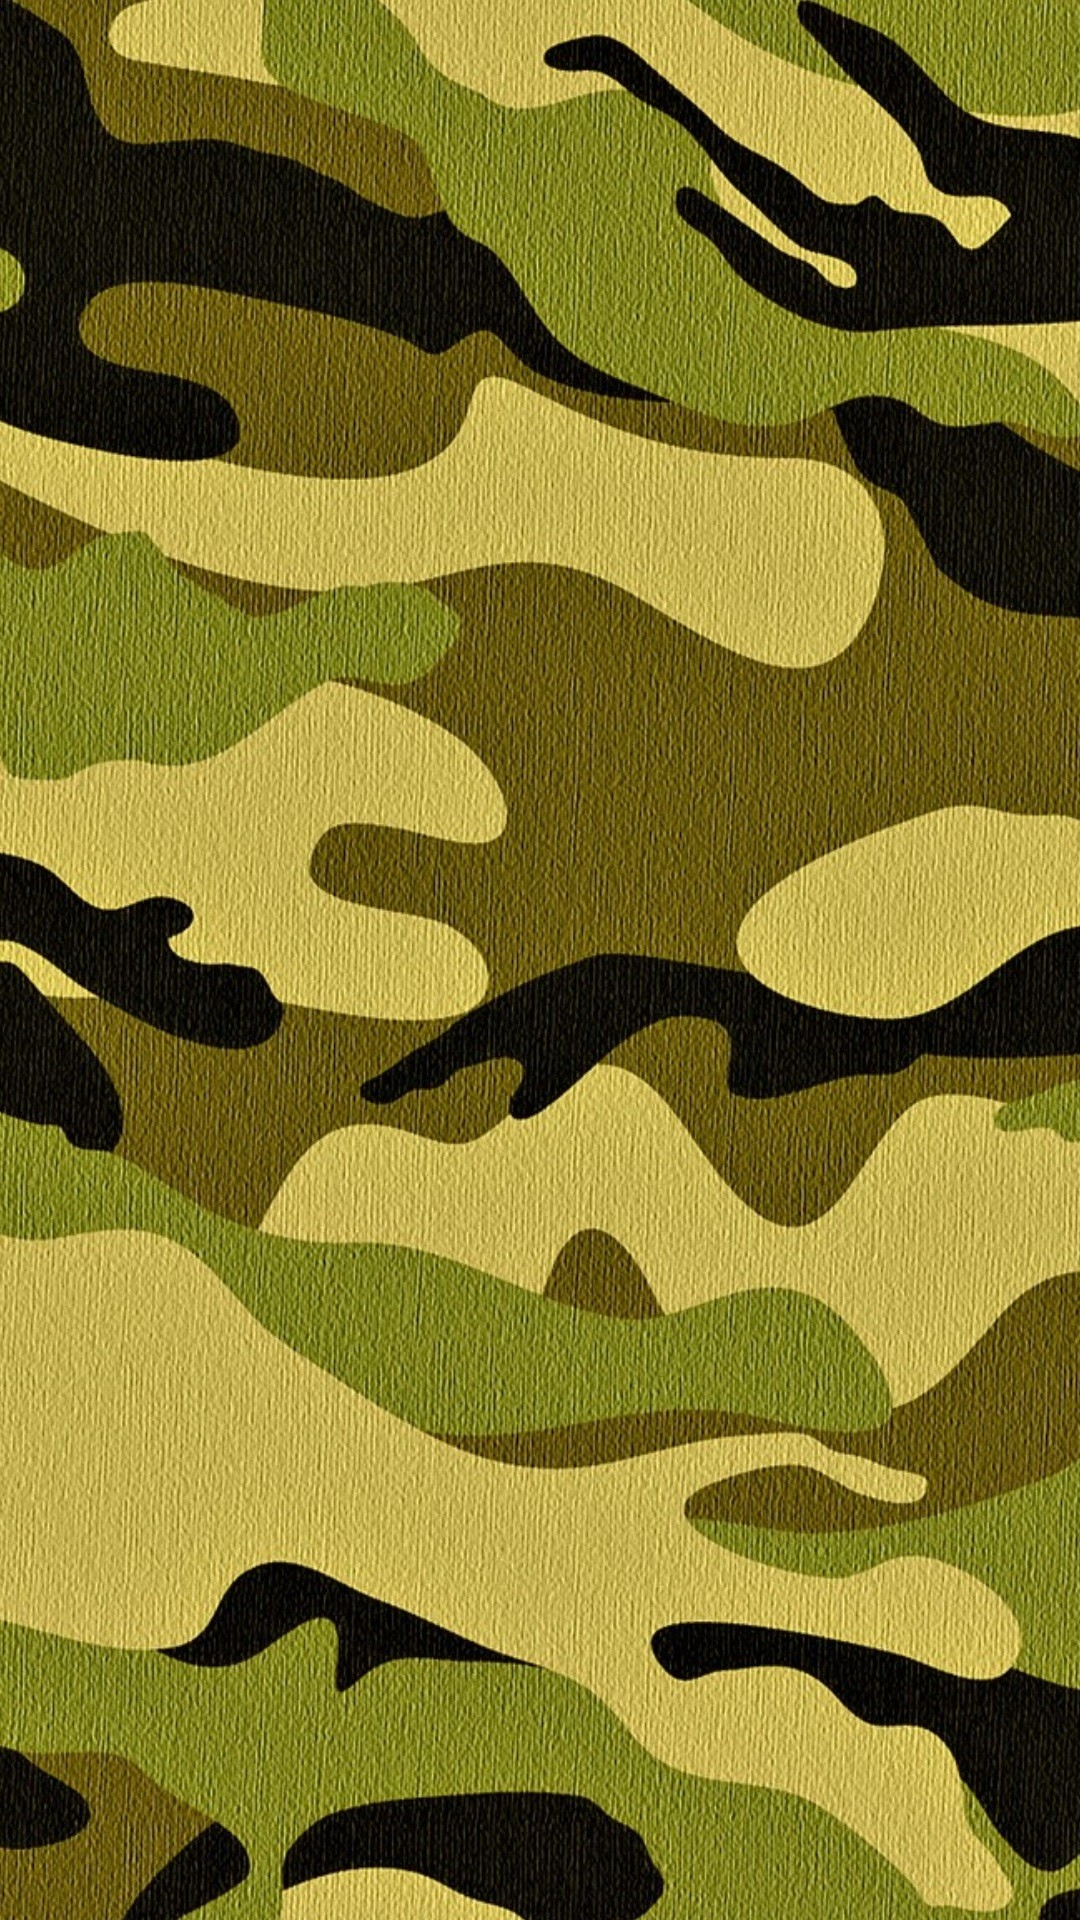 1080x1920 Camouflage wallpaper for iPhone or Android. Tags: camo, hunting, army,  backgrounds